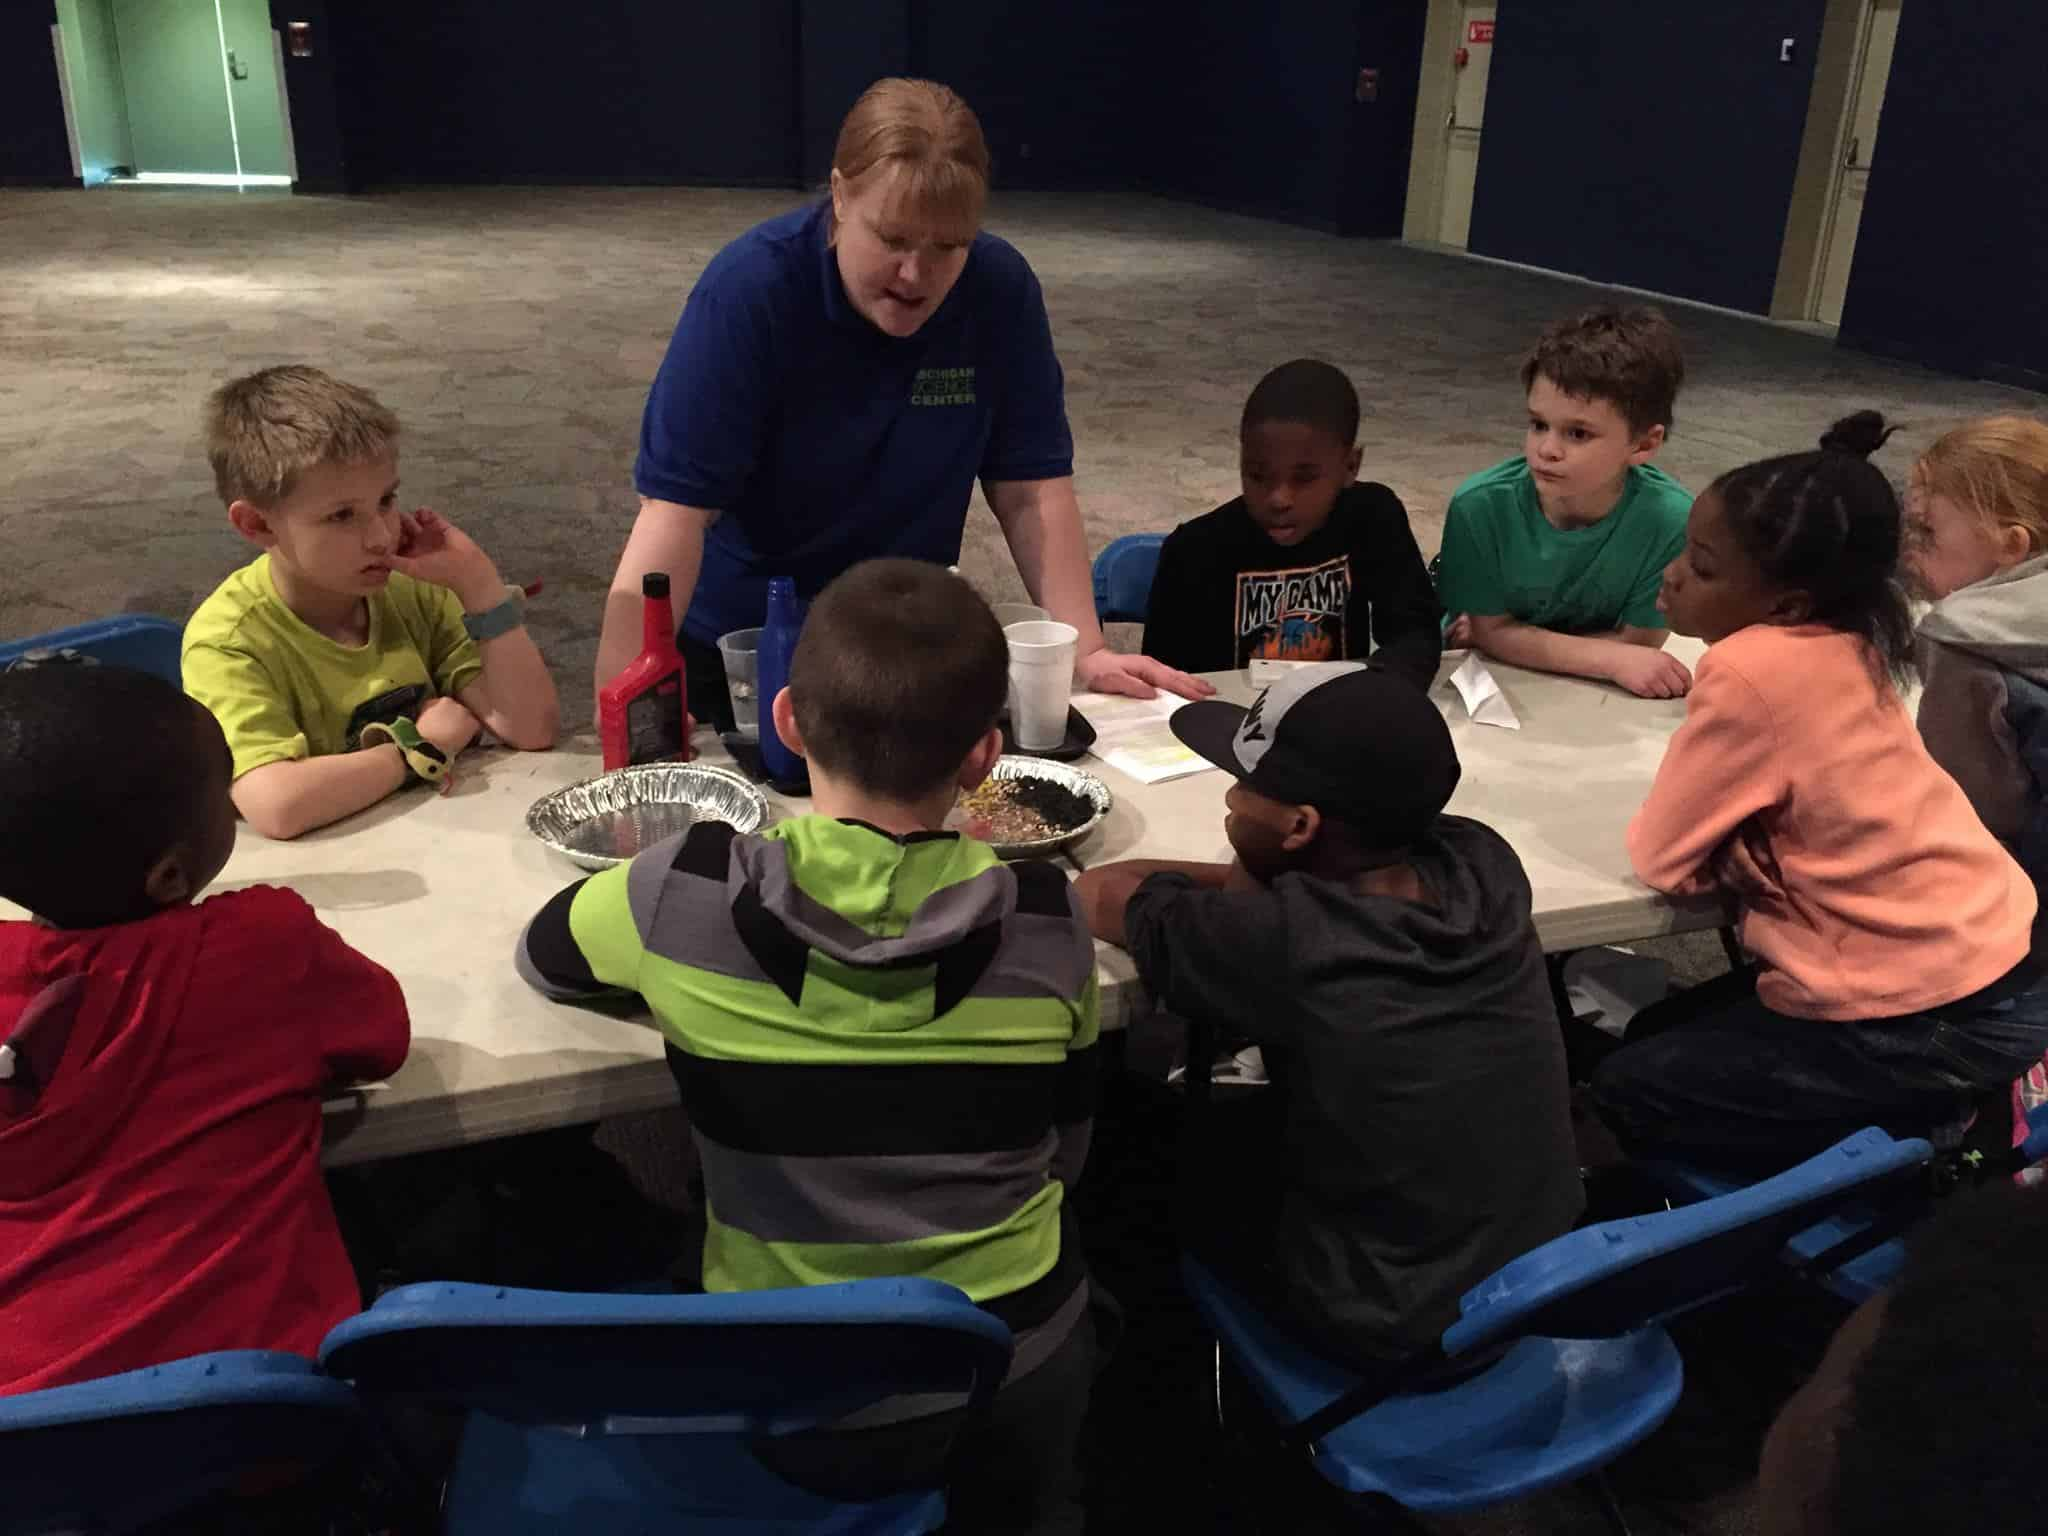 A science center educator teaches a group of children during summer camp